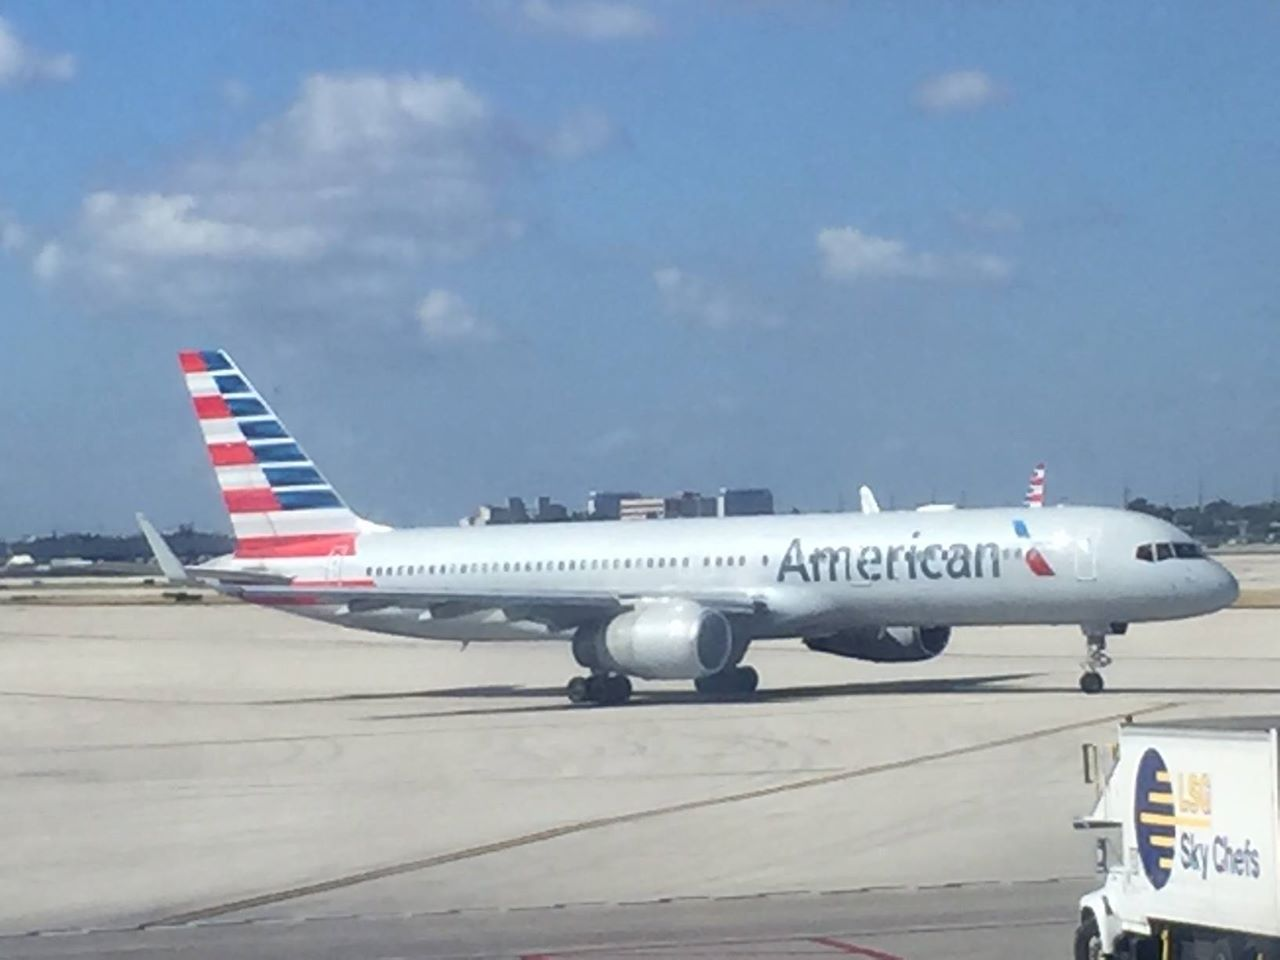 Jorge and Diane Brunet-García will board this American Airlines jet to Havana, 56 years after Jorge left Cuba.